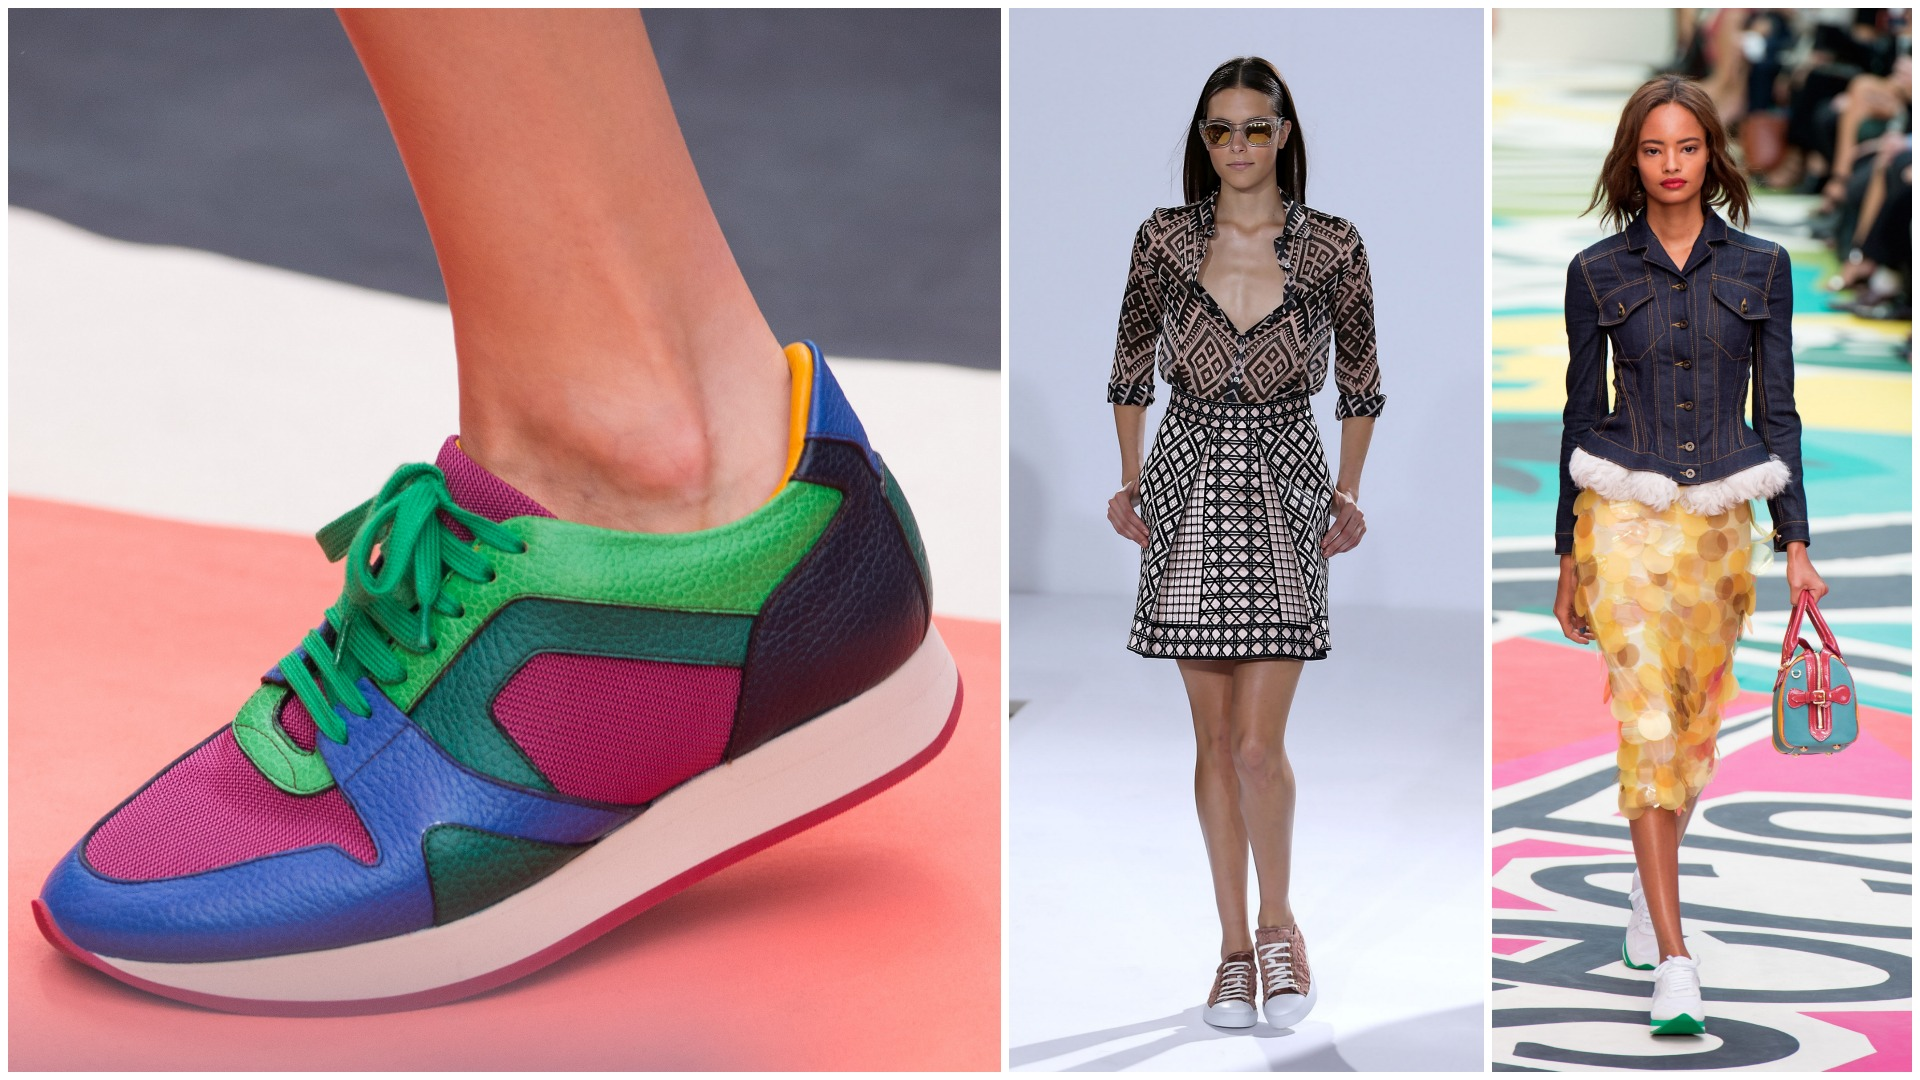 Trainers appeared on the catwalk at London Fashion Week 2014